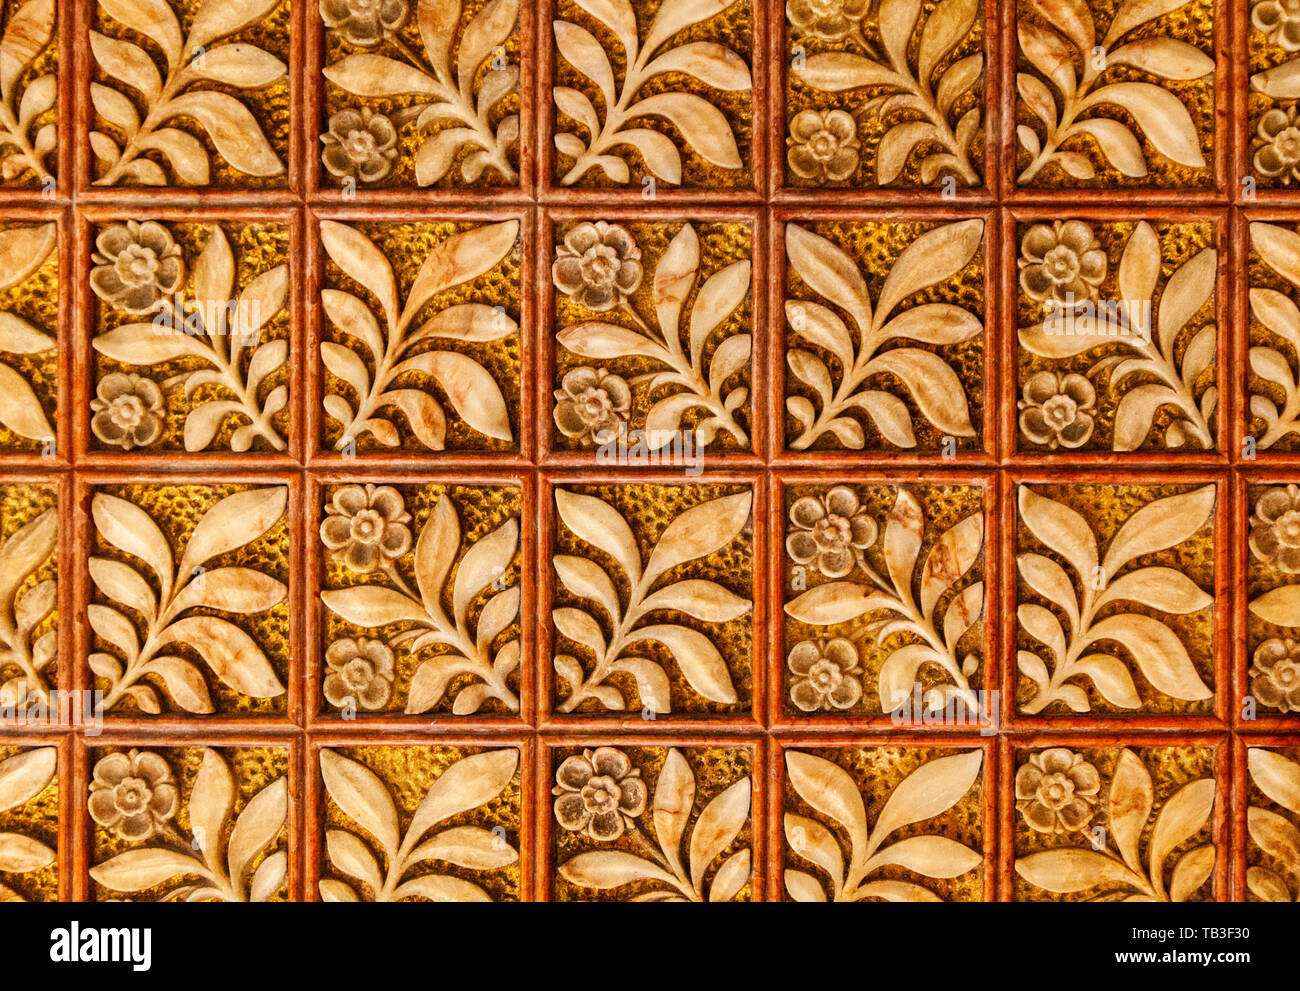 Symmetrical embossed leaves and flowers in squares - Stock Image